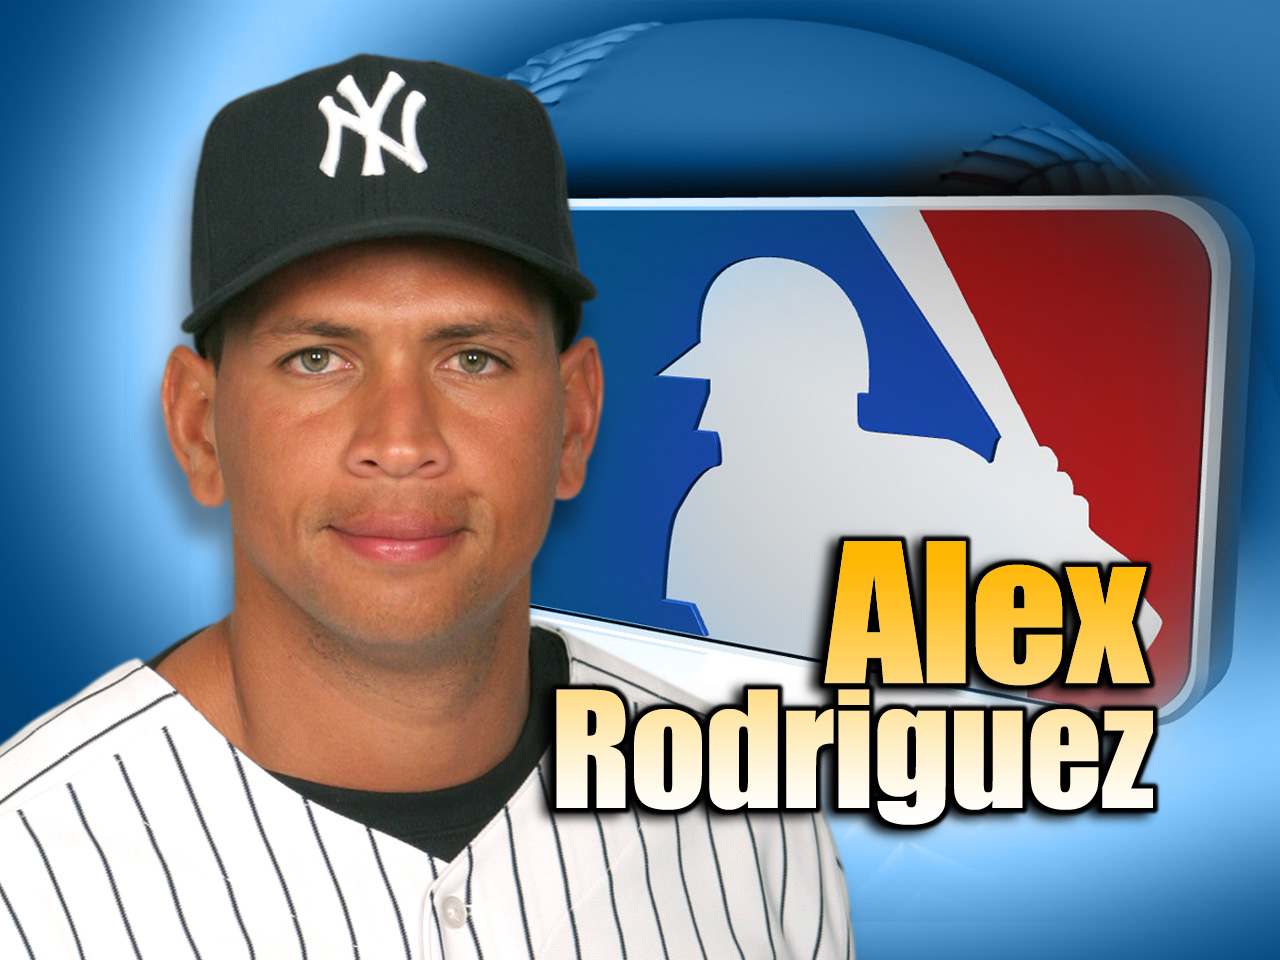 Alex Rodriguez hits 600th homer | WBRZ News 2 Louisiana : Baton Rouge, LA |